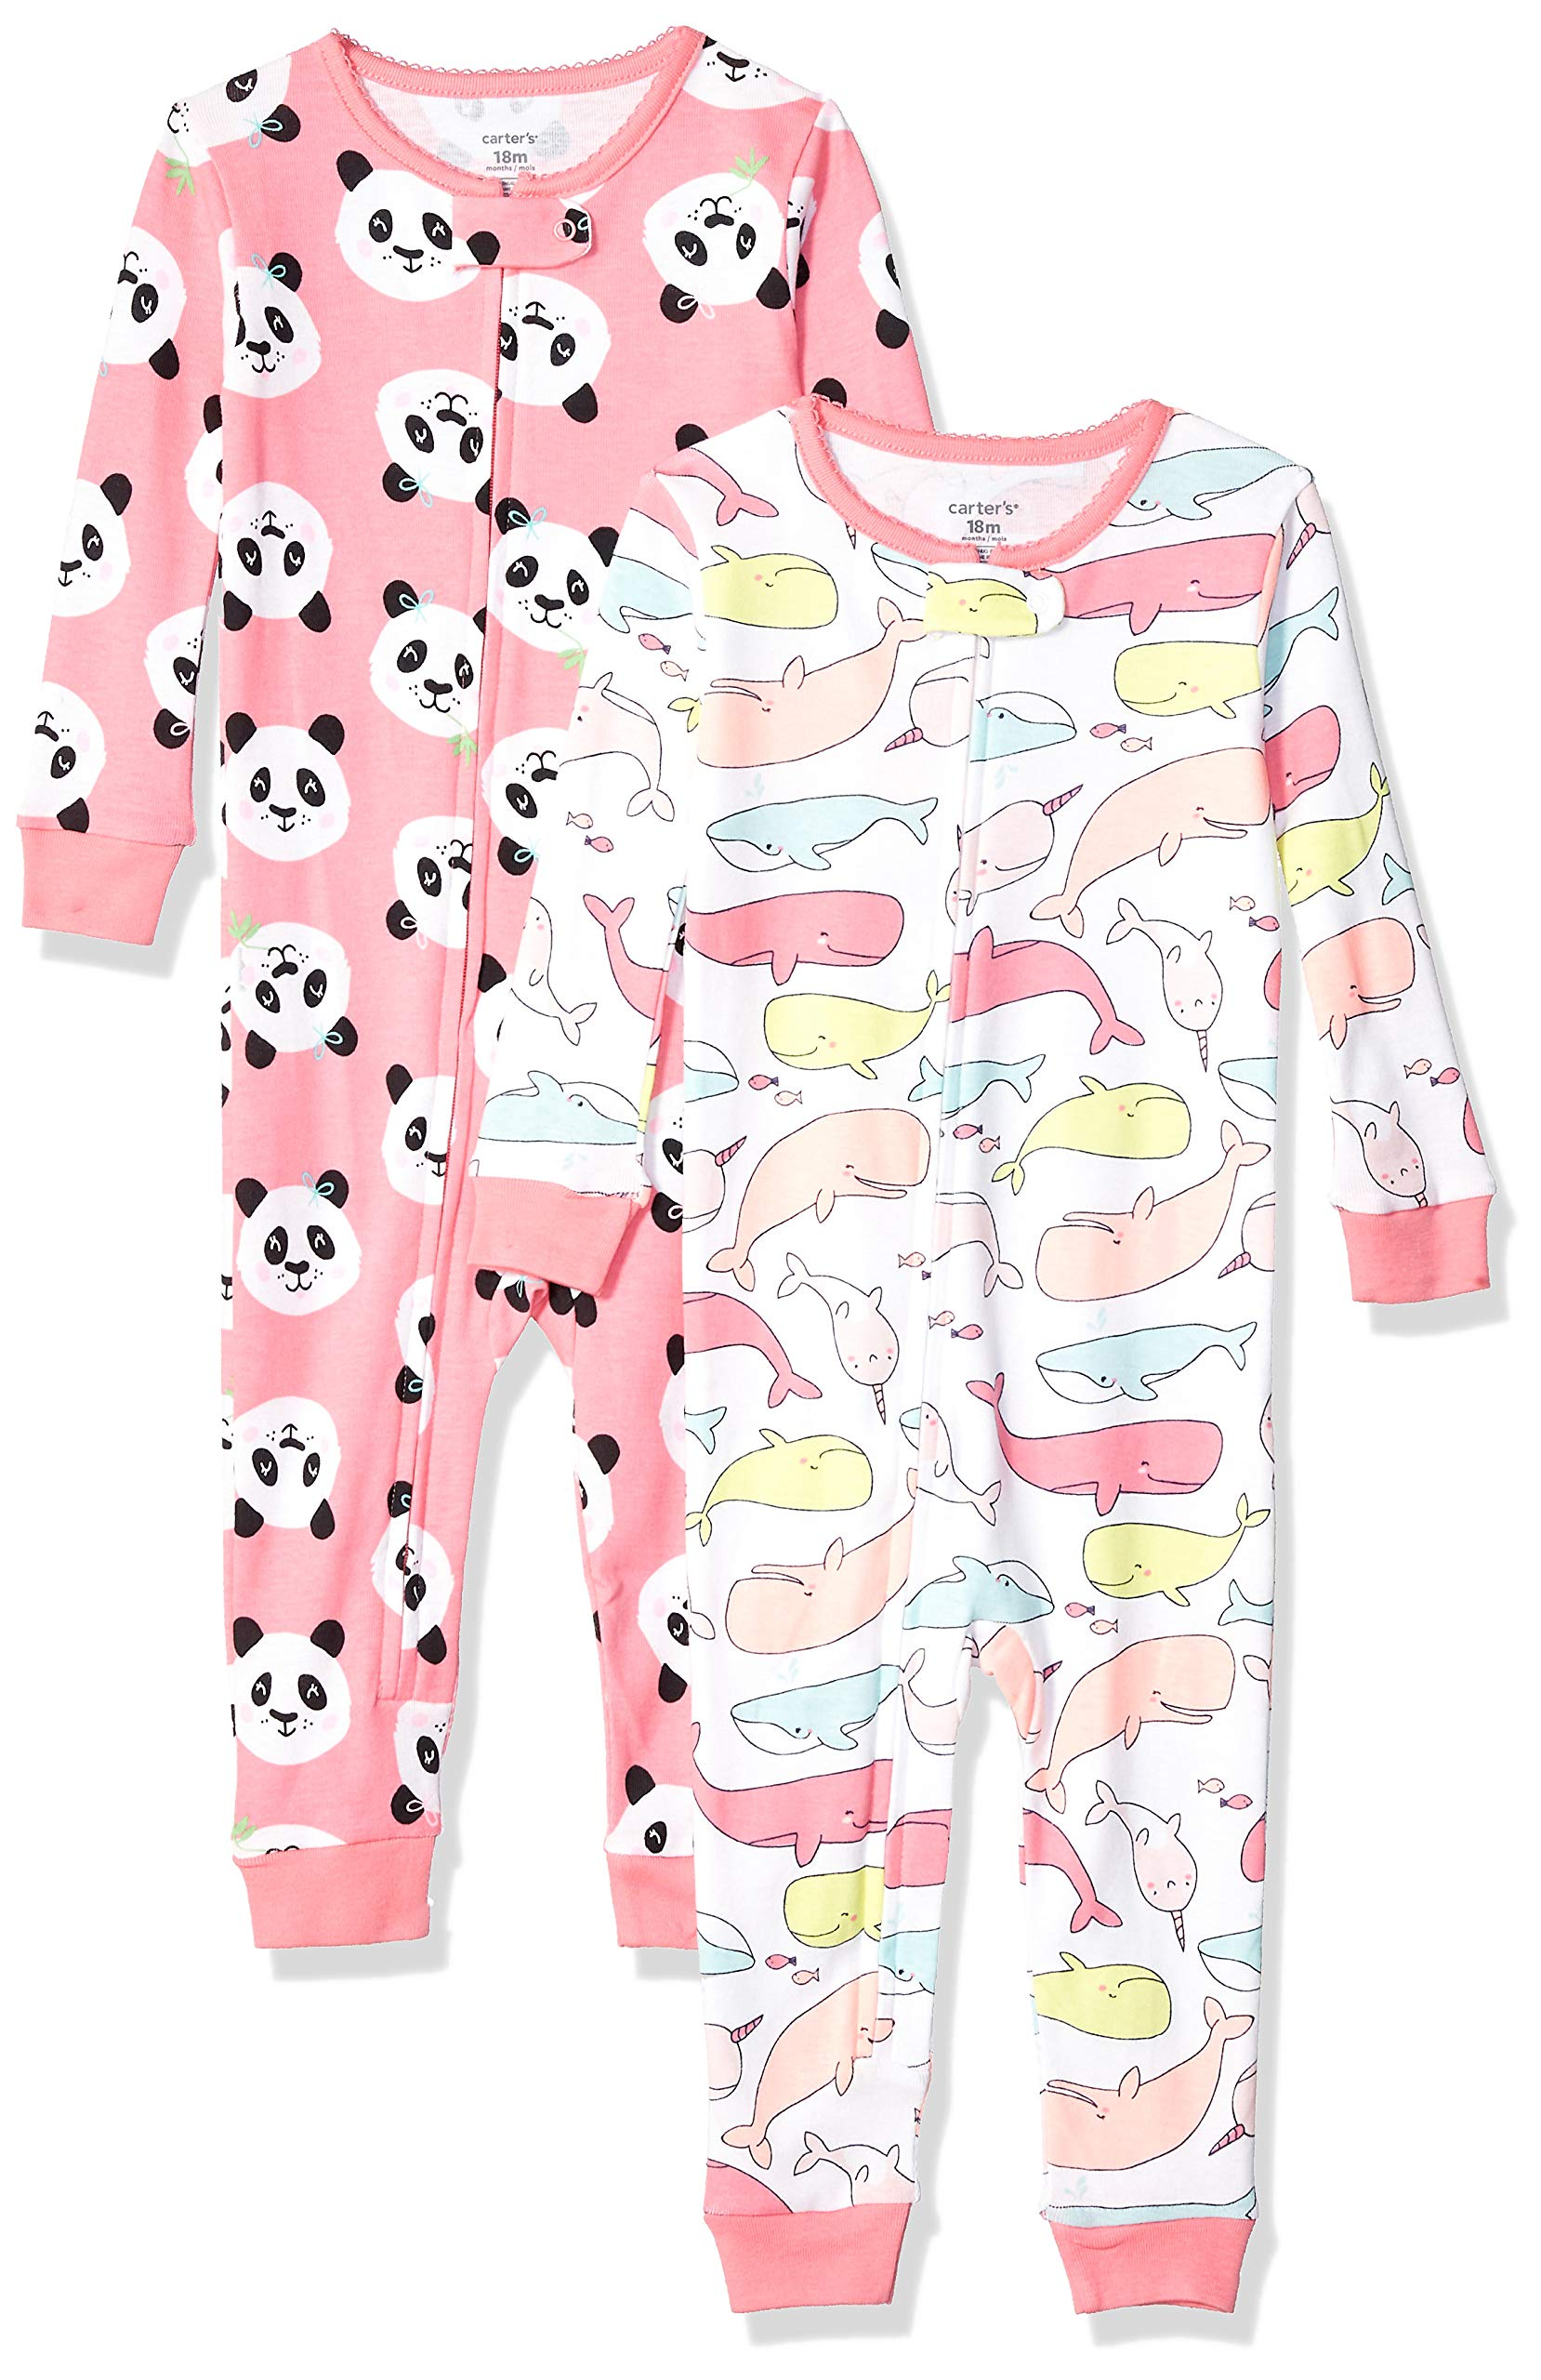 Carter's Baby Girls 2-Pack Cotton Footless